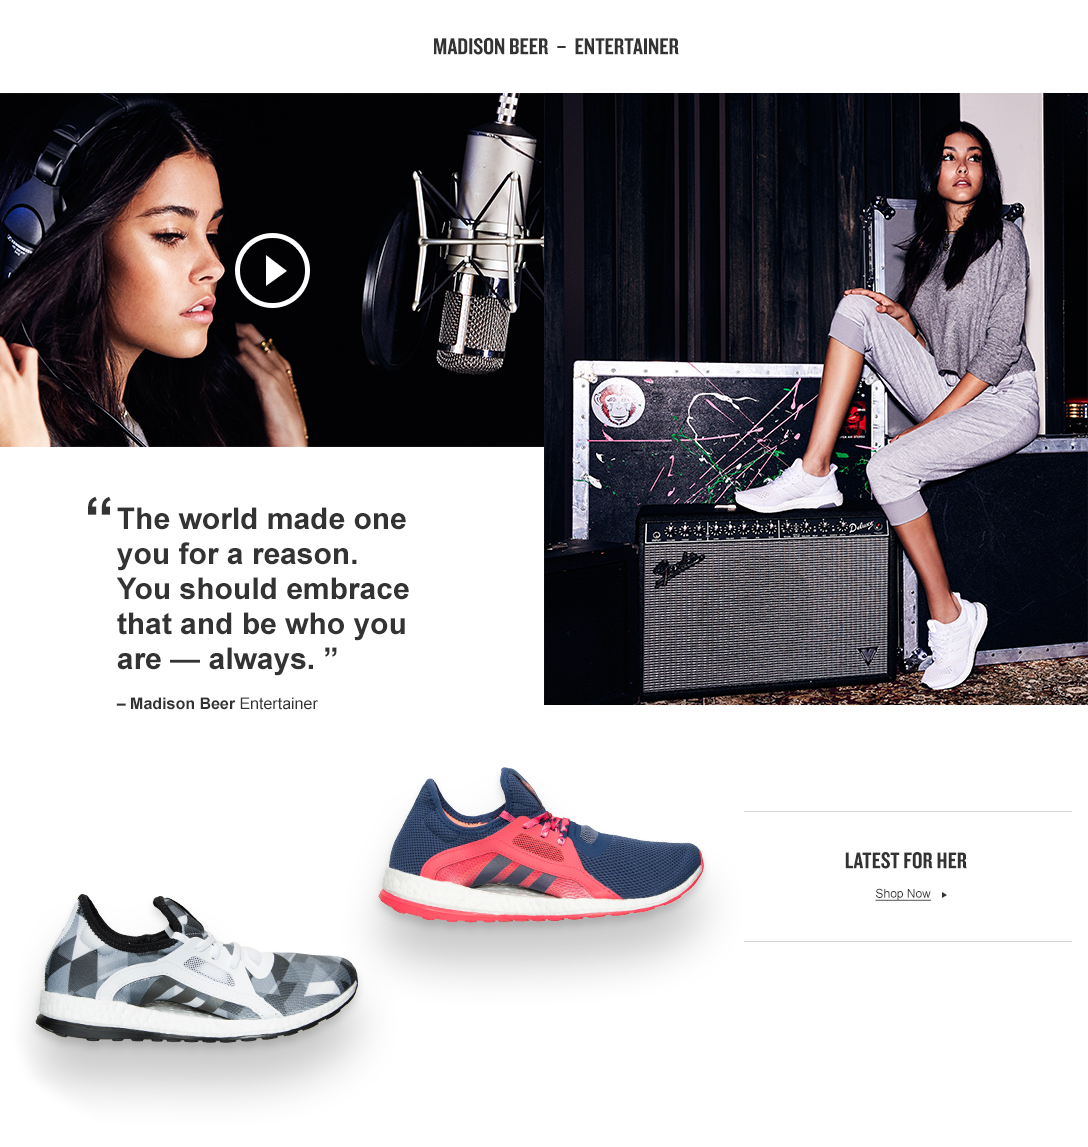 Entertainer Madison Beer said the world made one you for a reason. Be who you are always. She rocks adidas PureBoost X #EpicFinish.